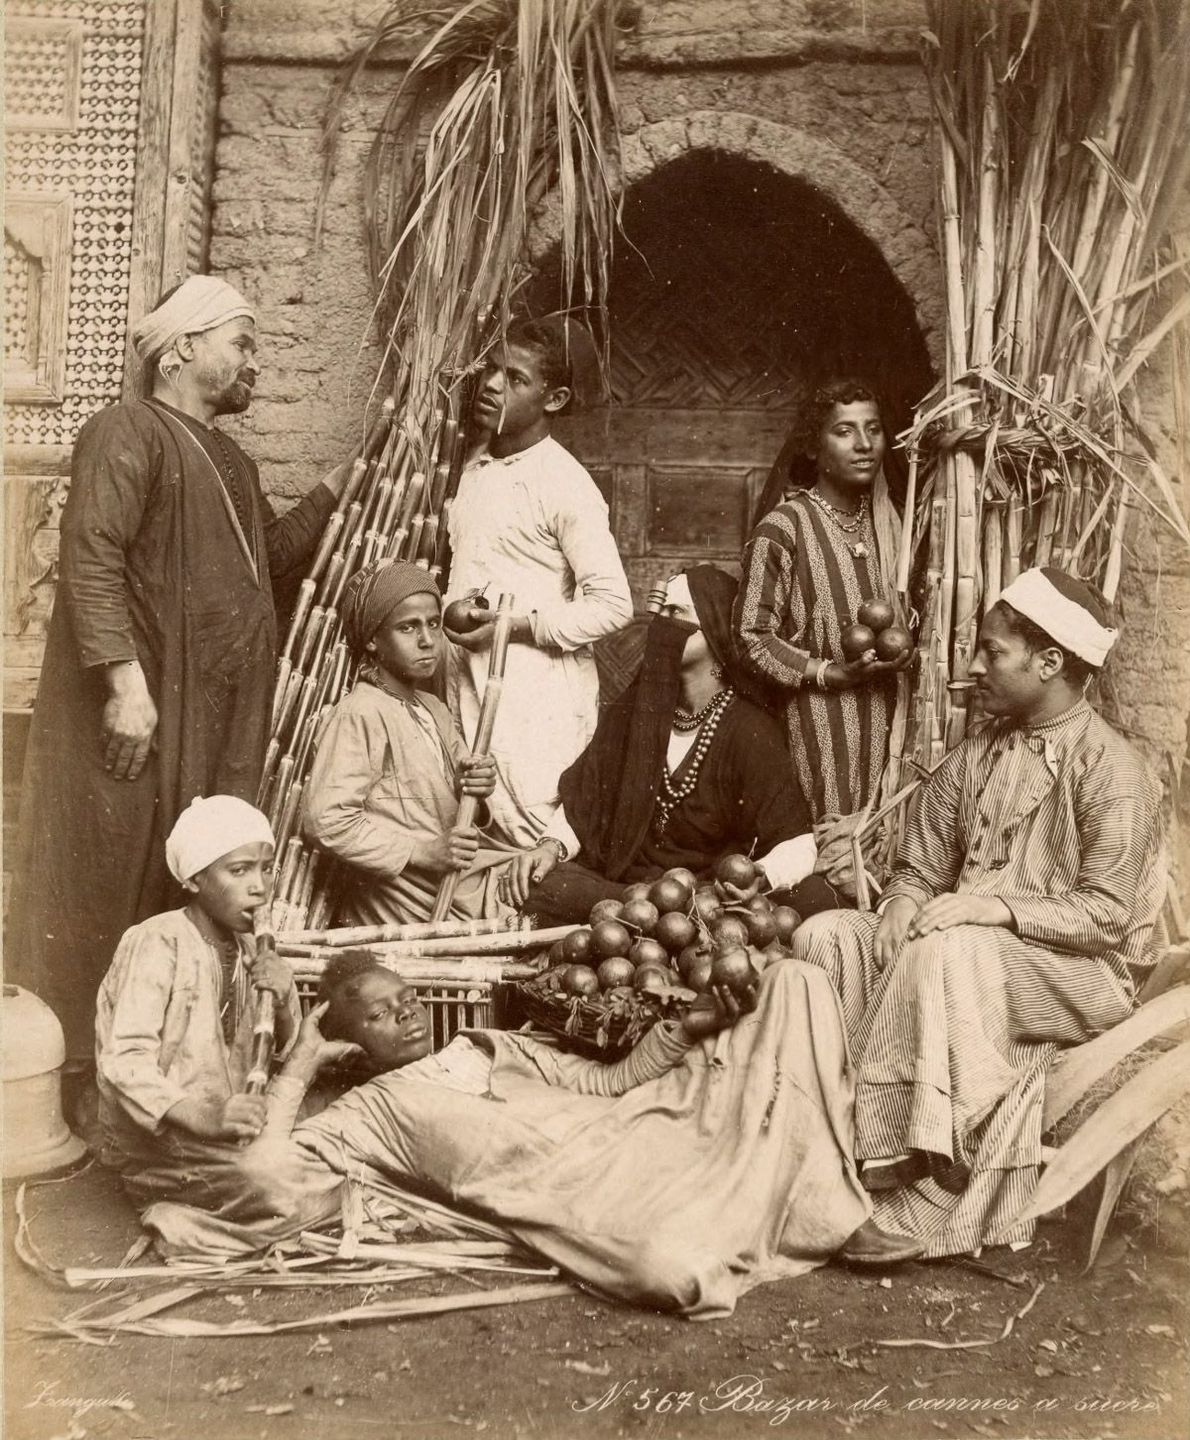 Vendors in a bazaar.